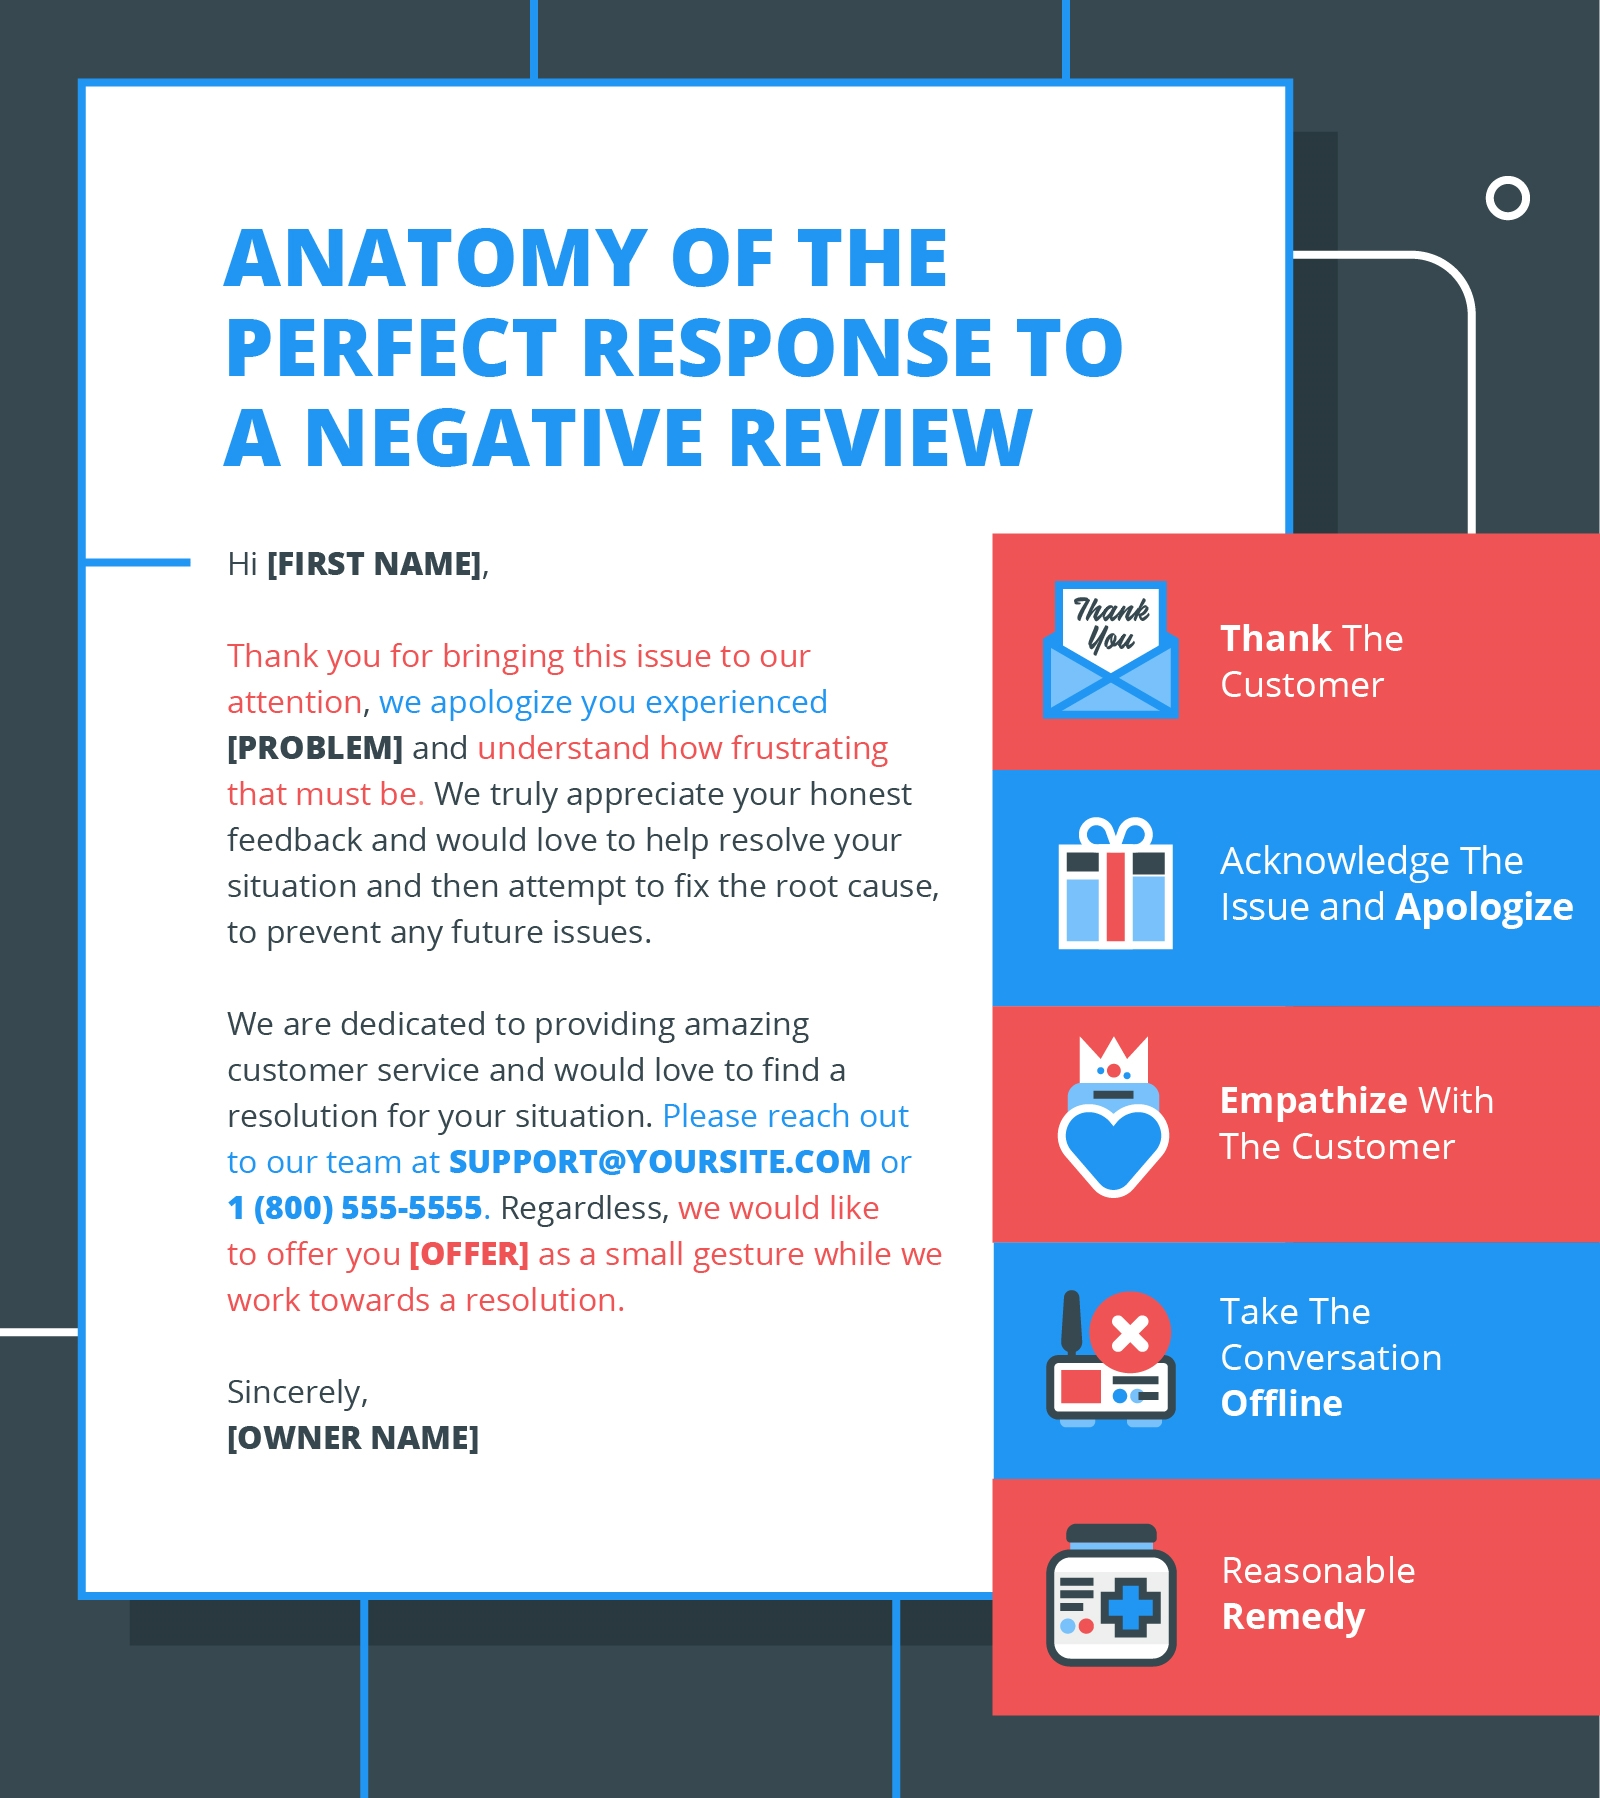 Tips for Responding to Negative Reviews on Yelp and Google